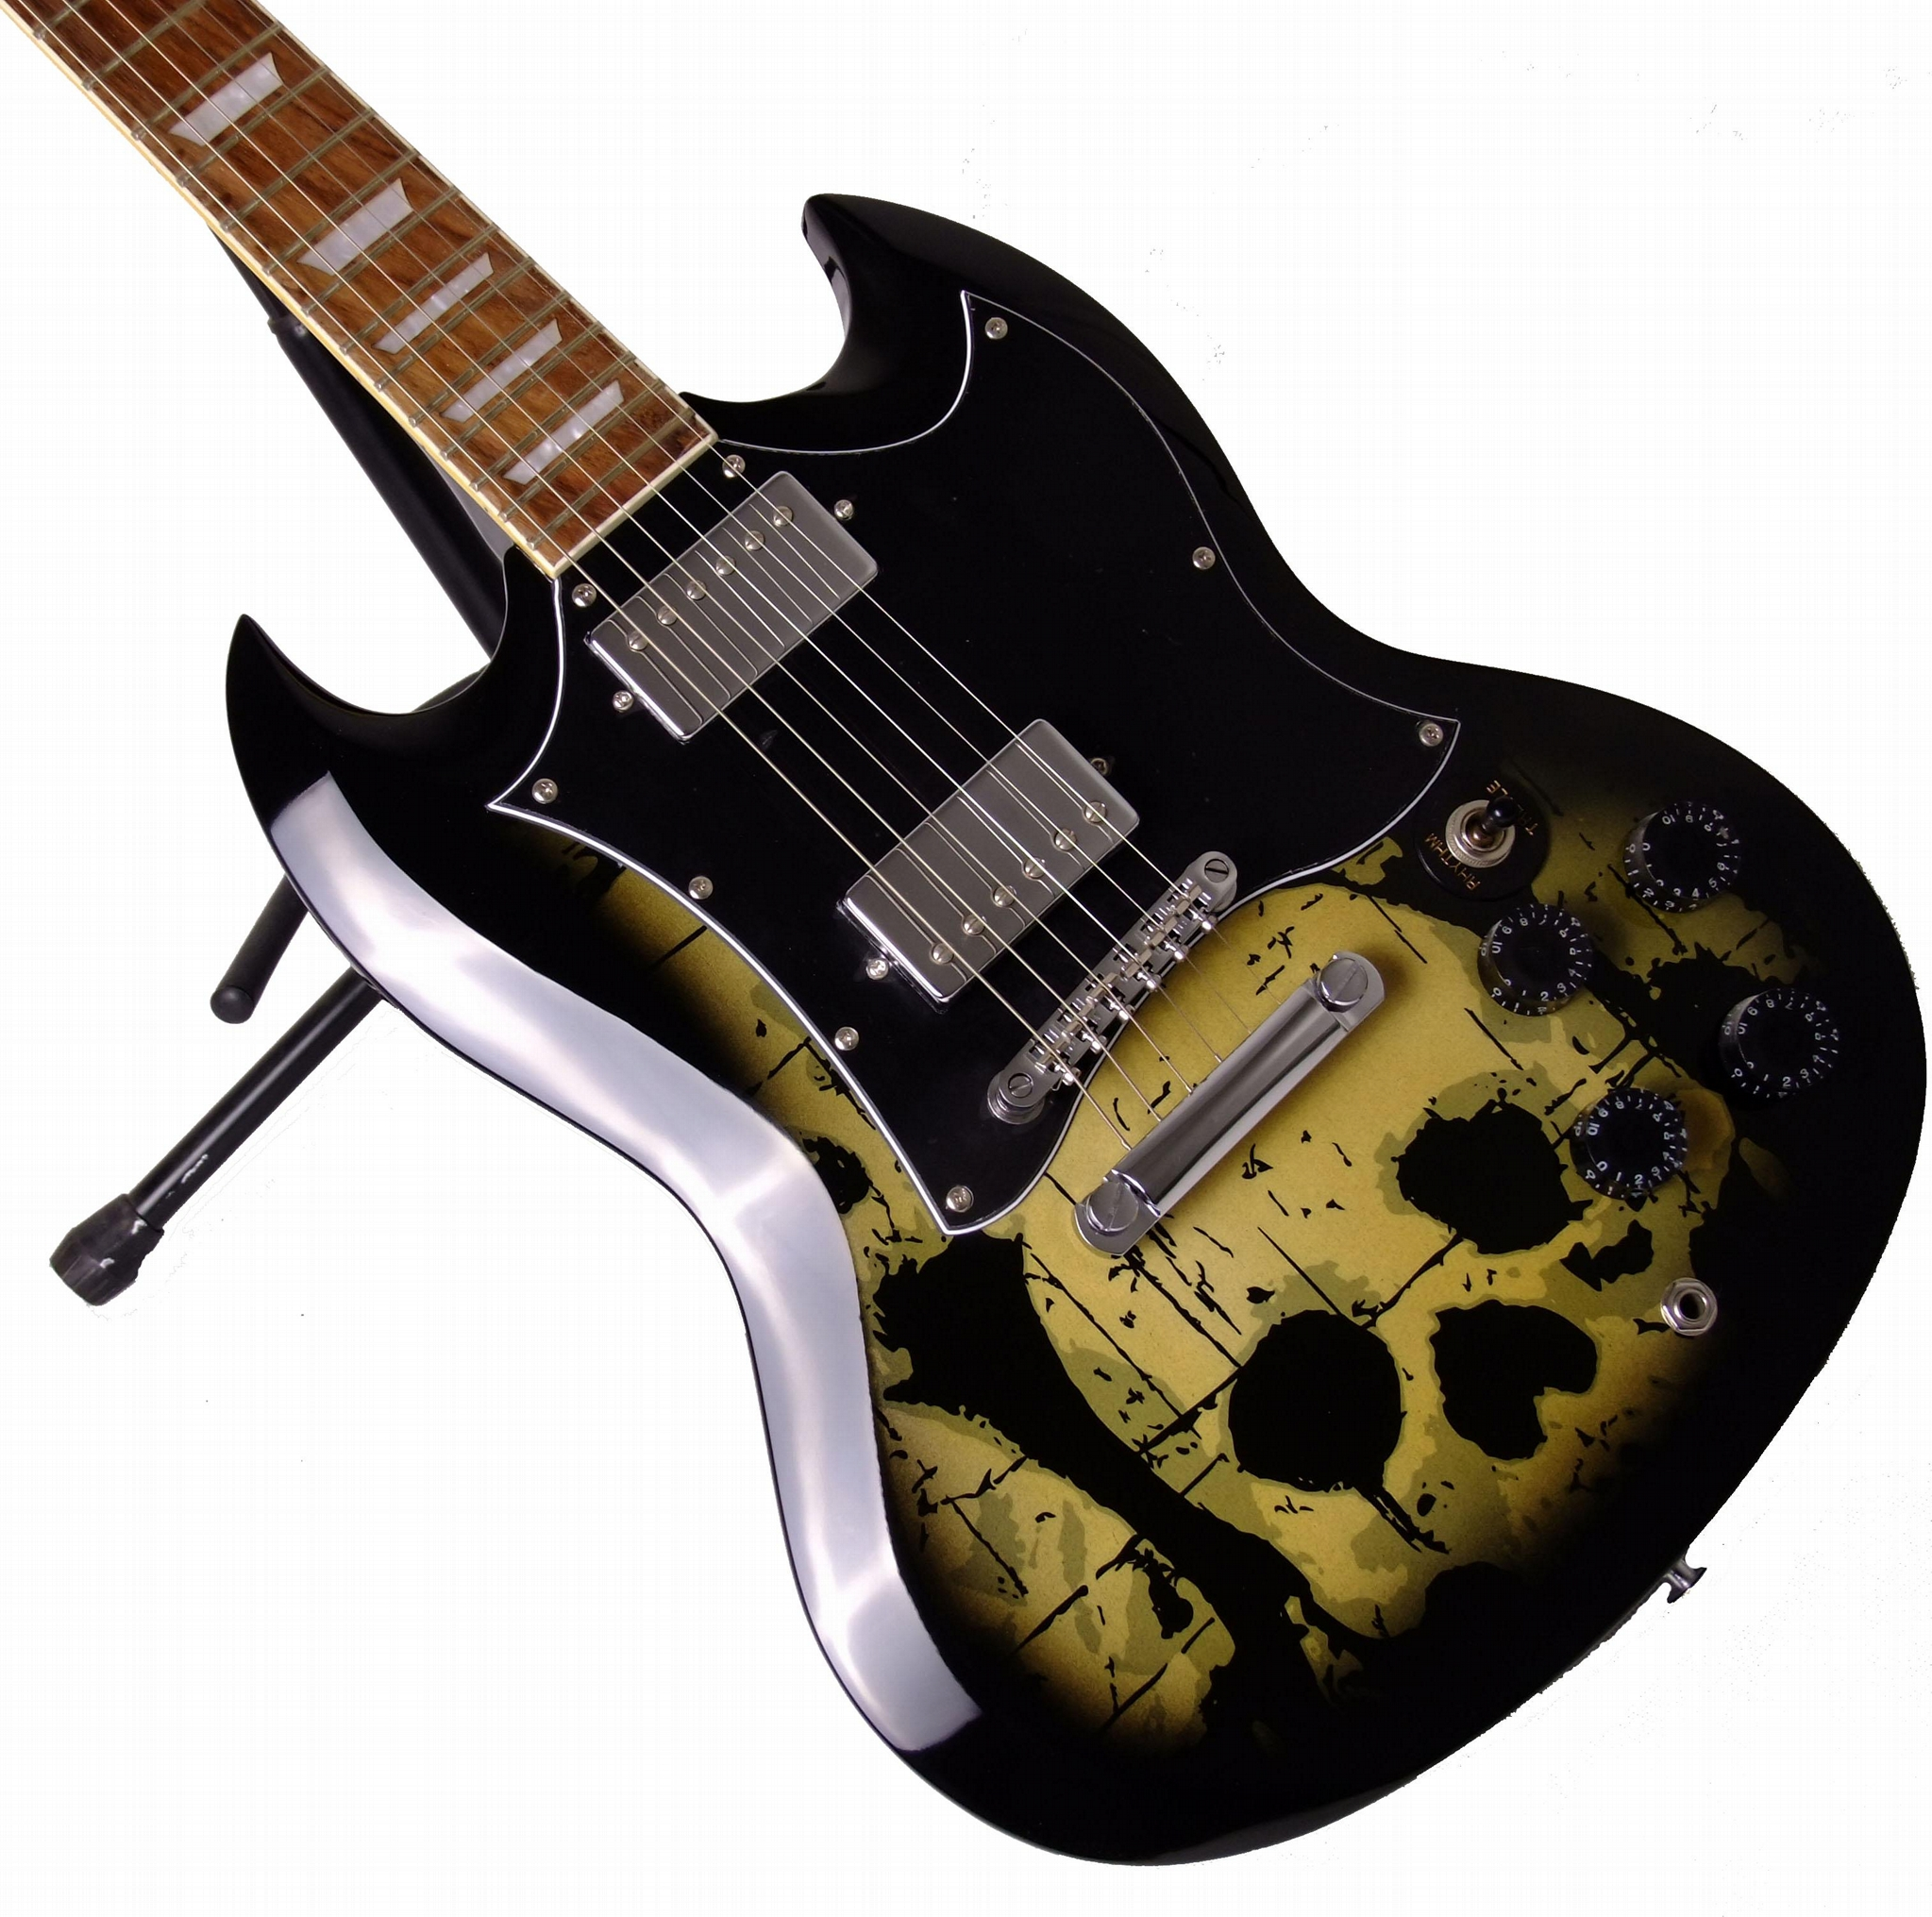 2020 Jingying Music SG Type Camouflage or Skulls Pattern Electric Guitars 1